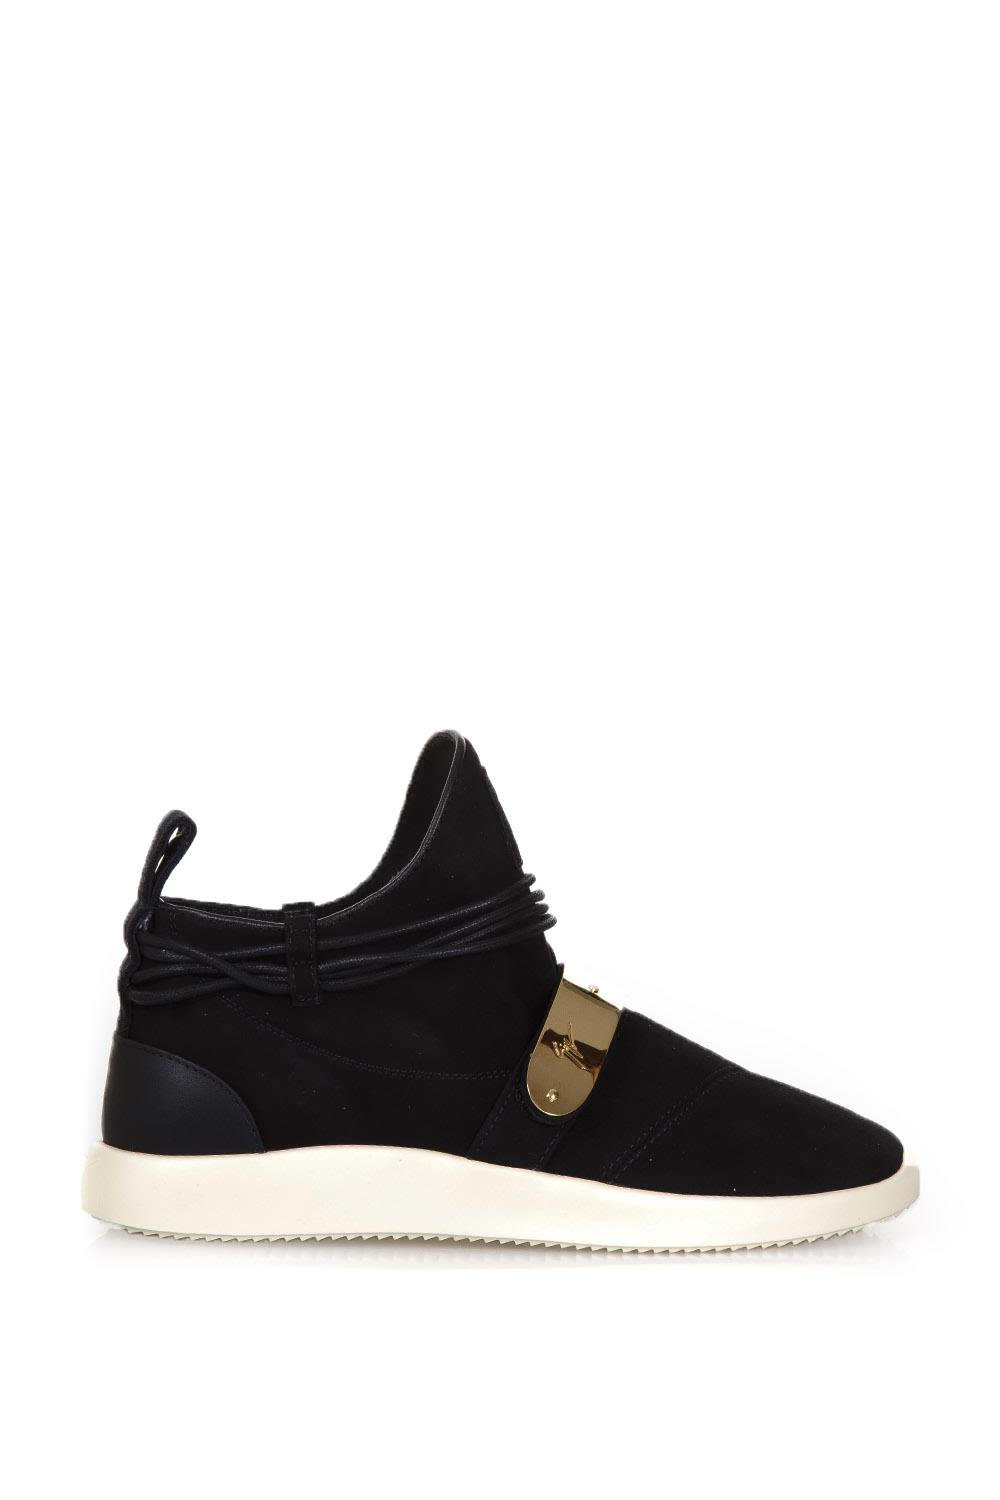 Giuseppe Zanotti Suede Slip-on Sneakers With Metal Plaque